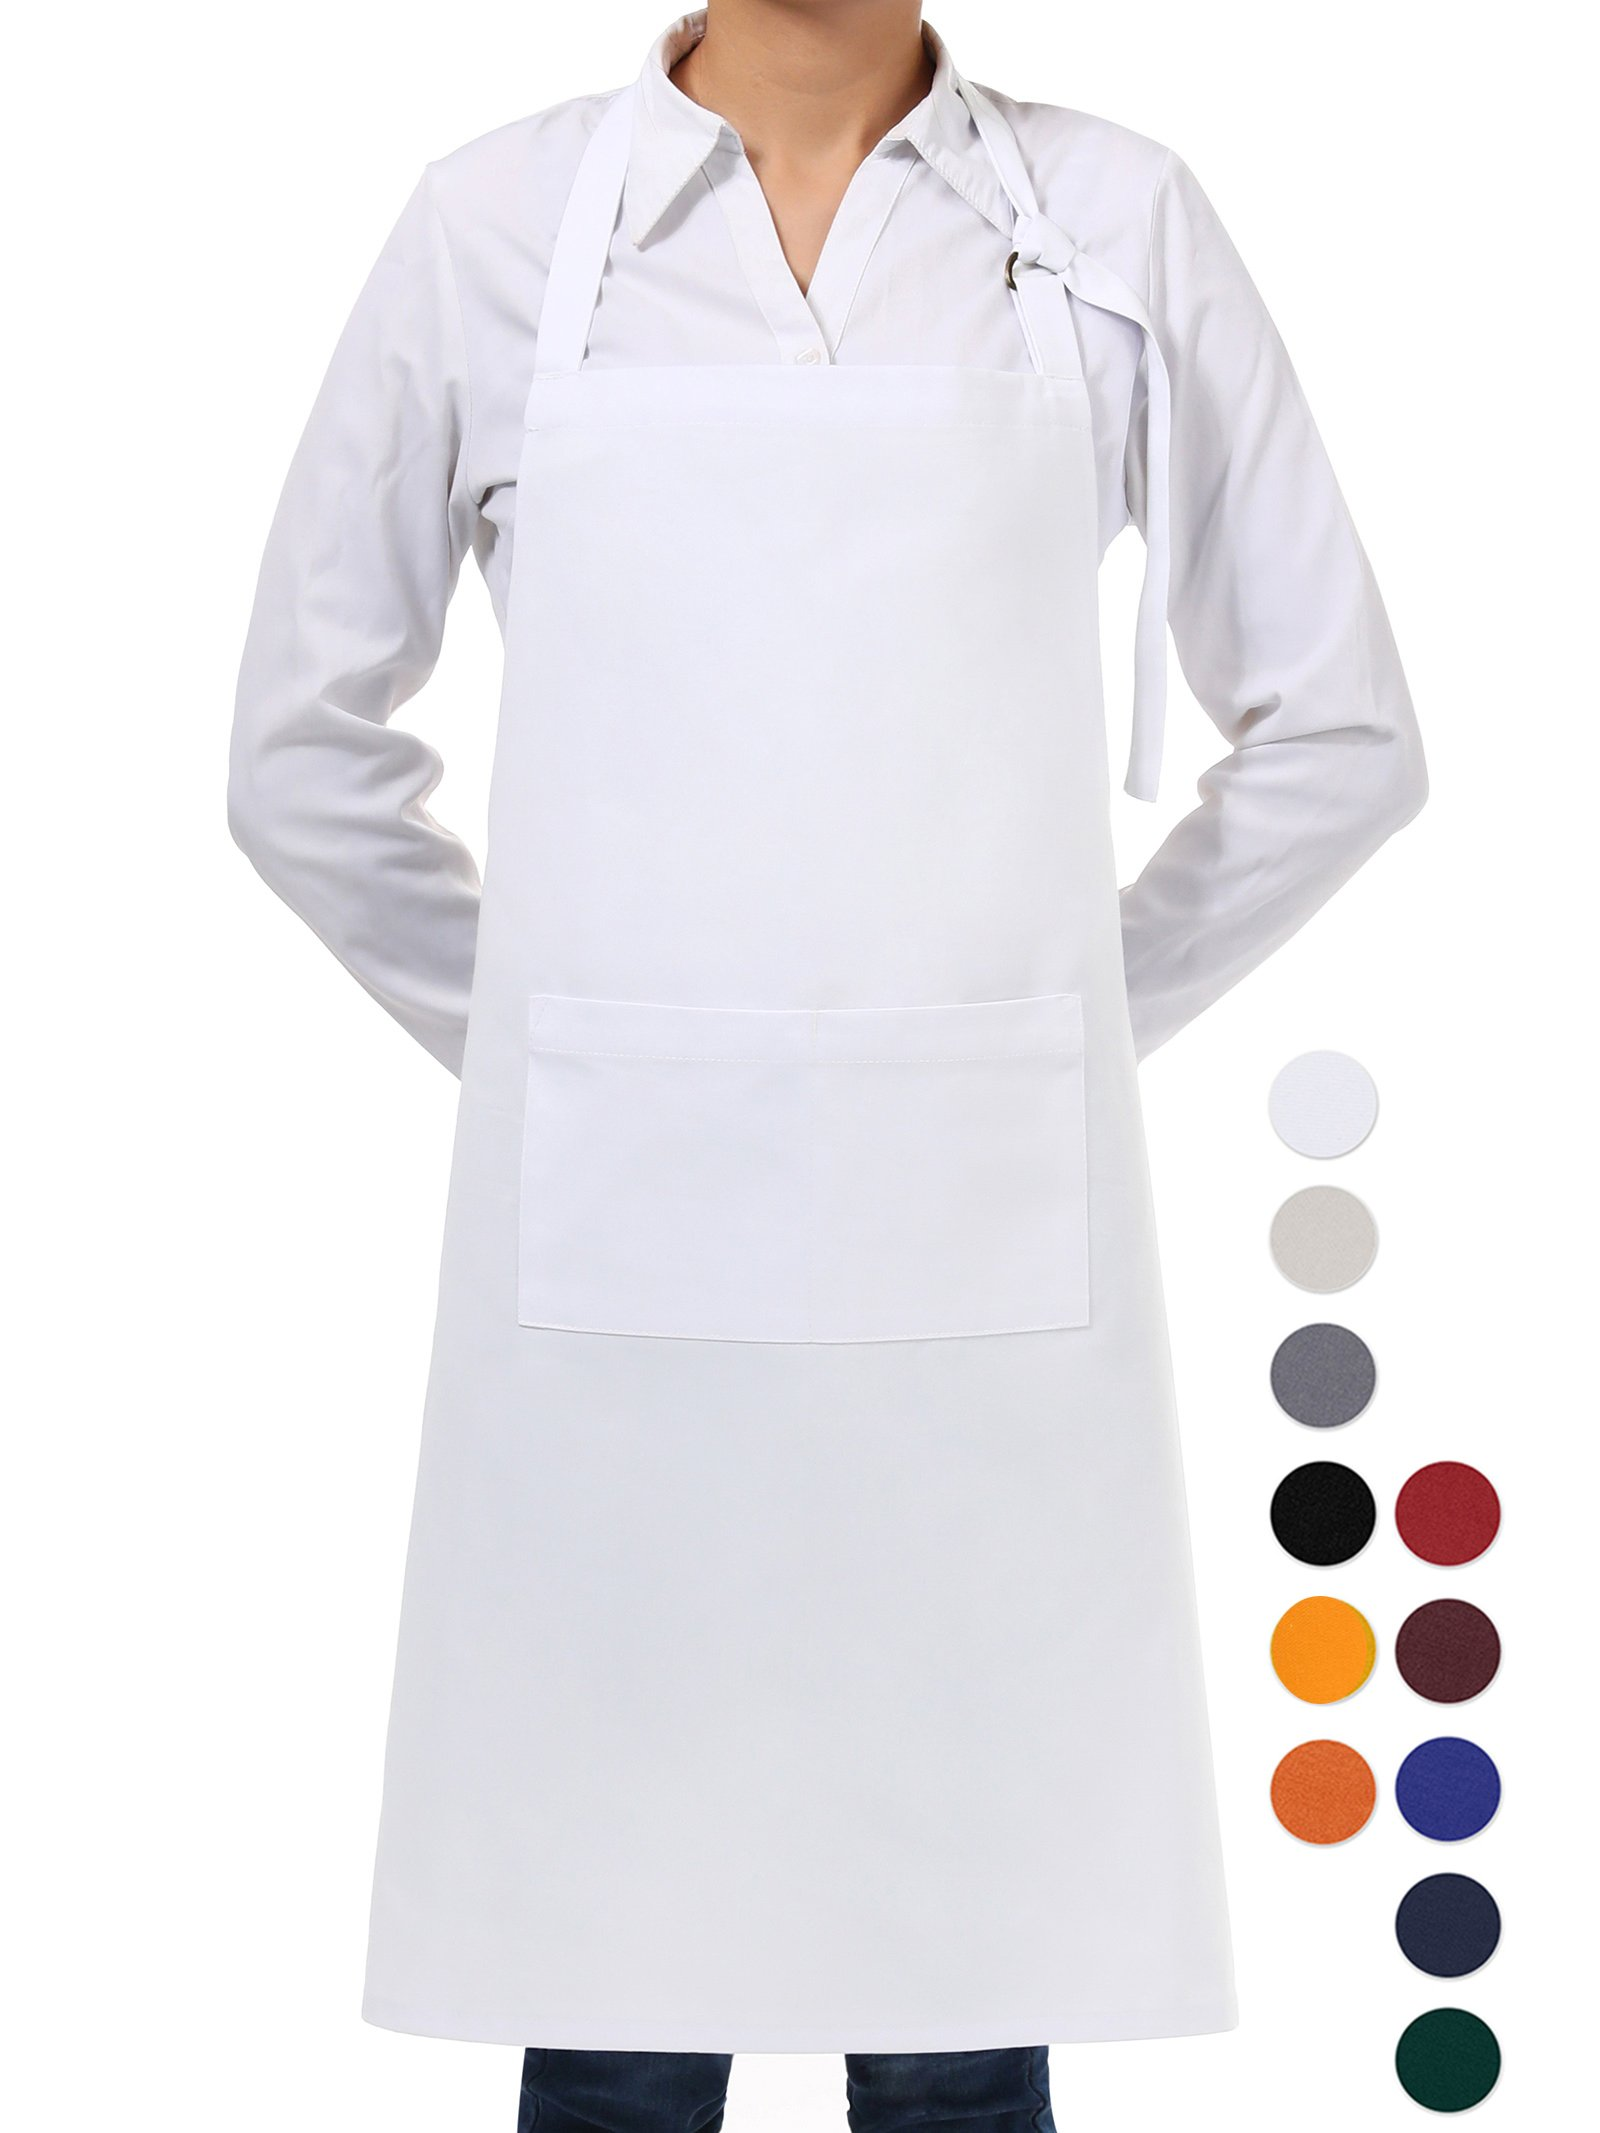 VEEYOO Adjustable Chef Bib Apron with 2 Pockets, Durable Spun Poly Cotton, Cooking Kitchen Restaurant Uniform Aprons for Men Women, 32x28 inches, White